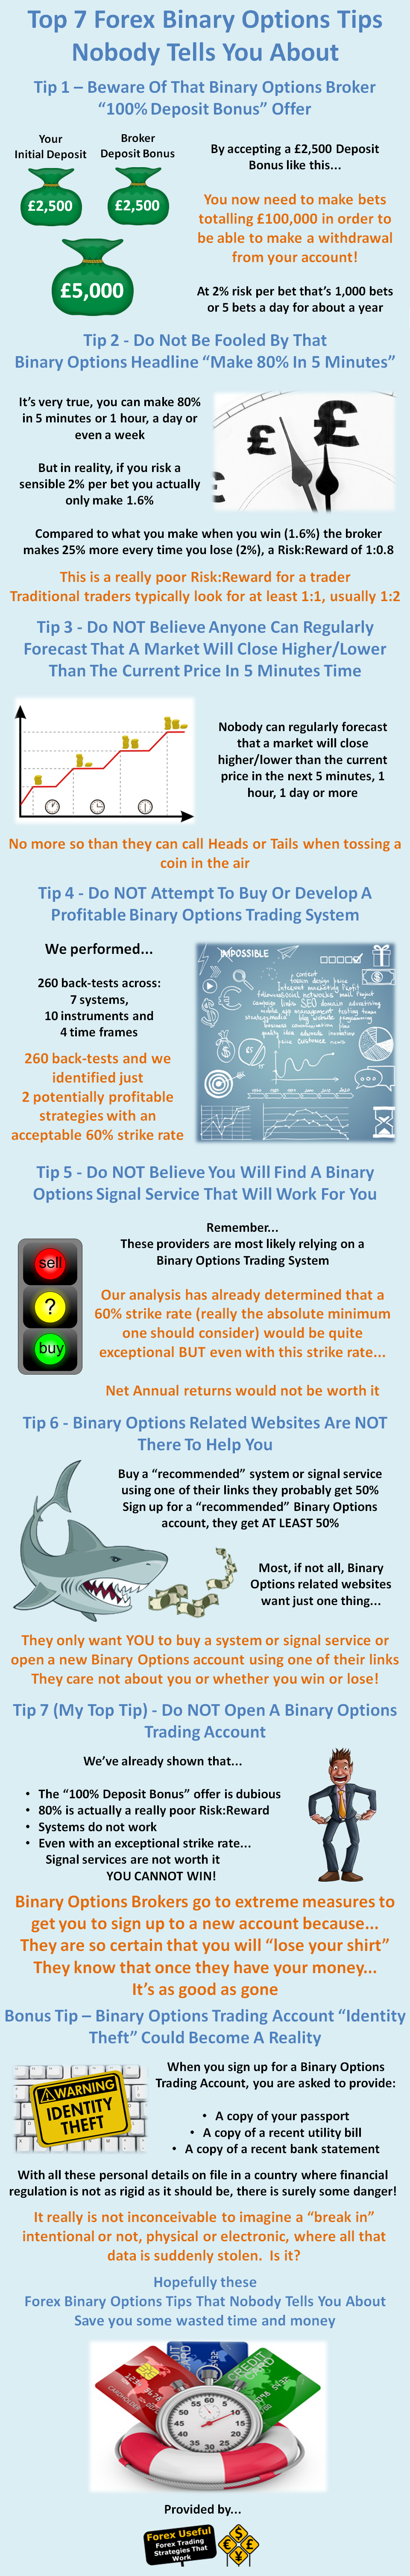 Top 7 Forex Binary Options Tips You Have Never Heard 2